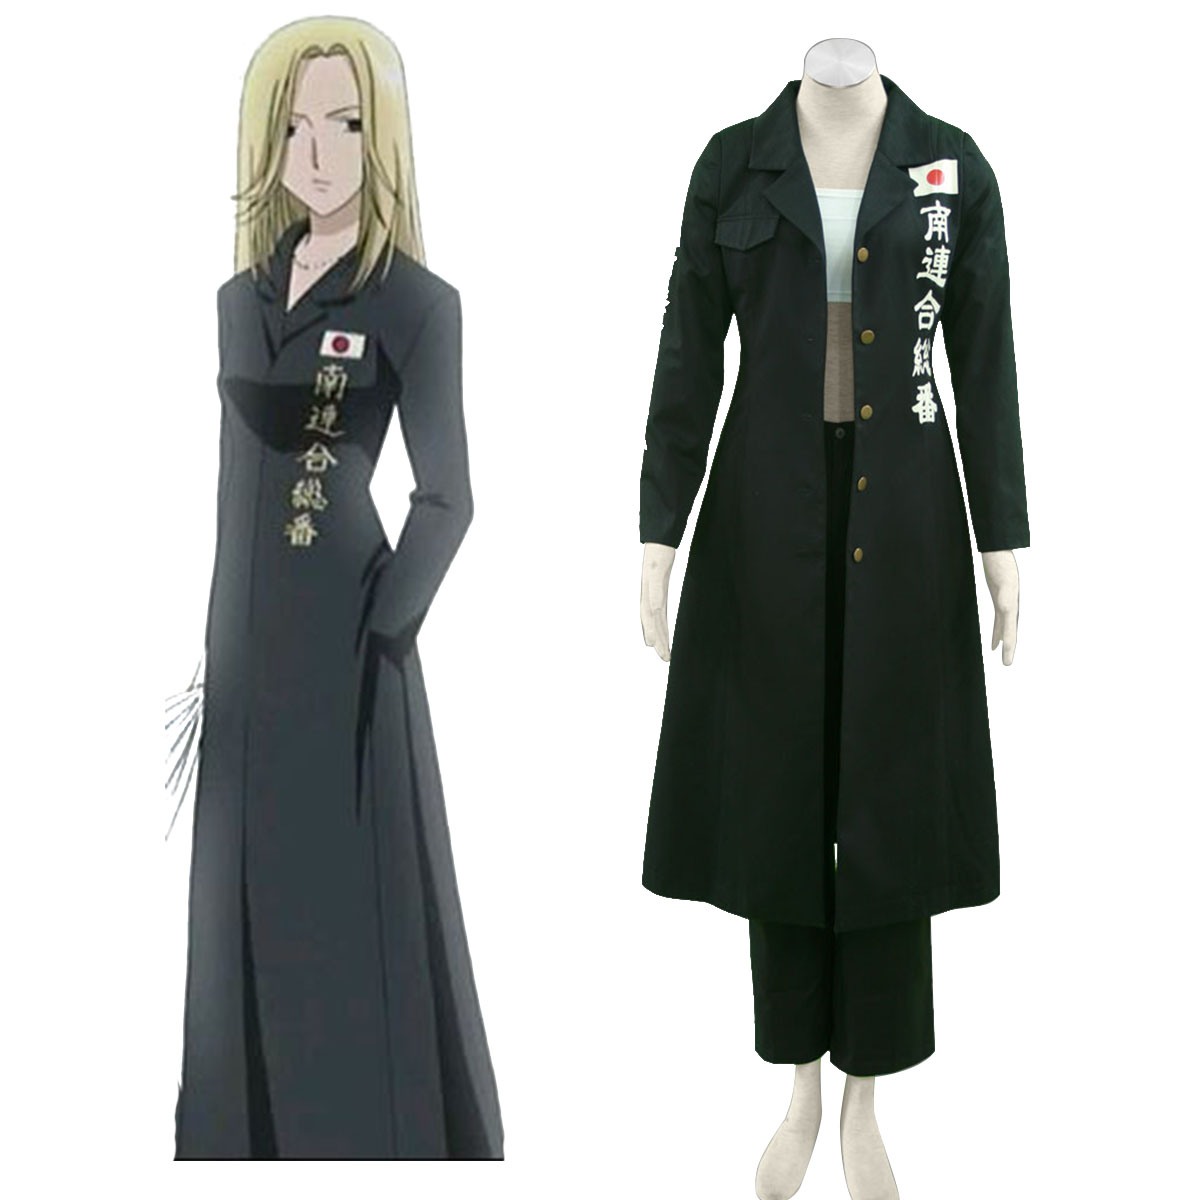 Fruits Basket Uotani Arisa Cosplay Costumes Deluxe Edition